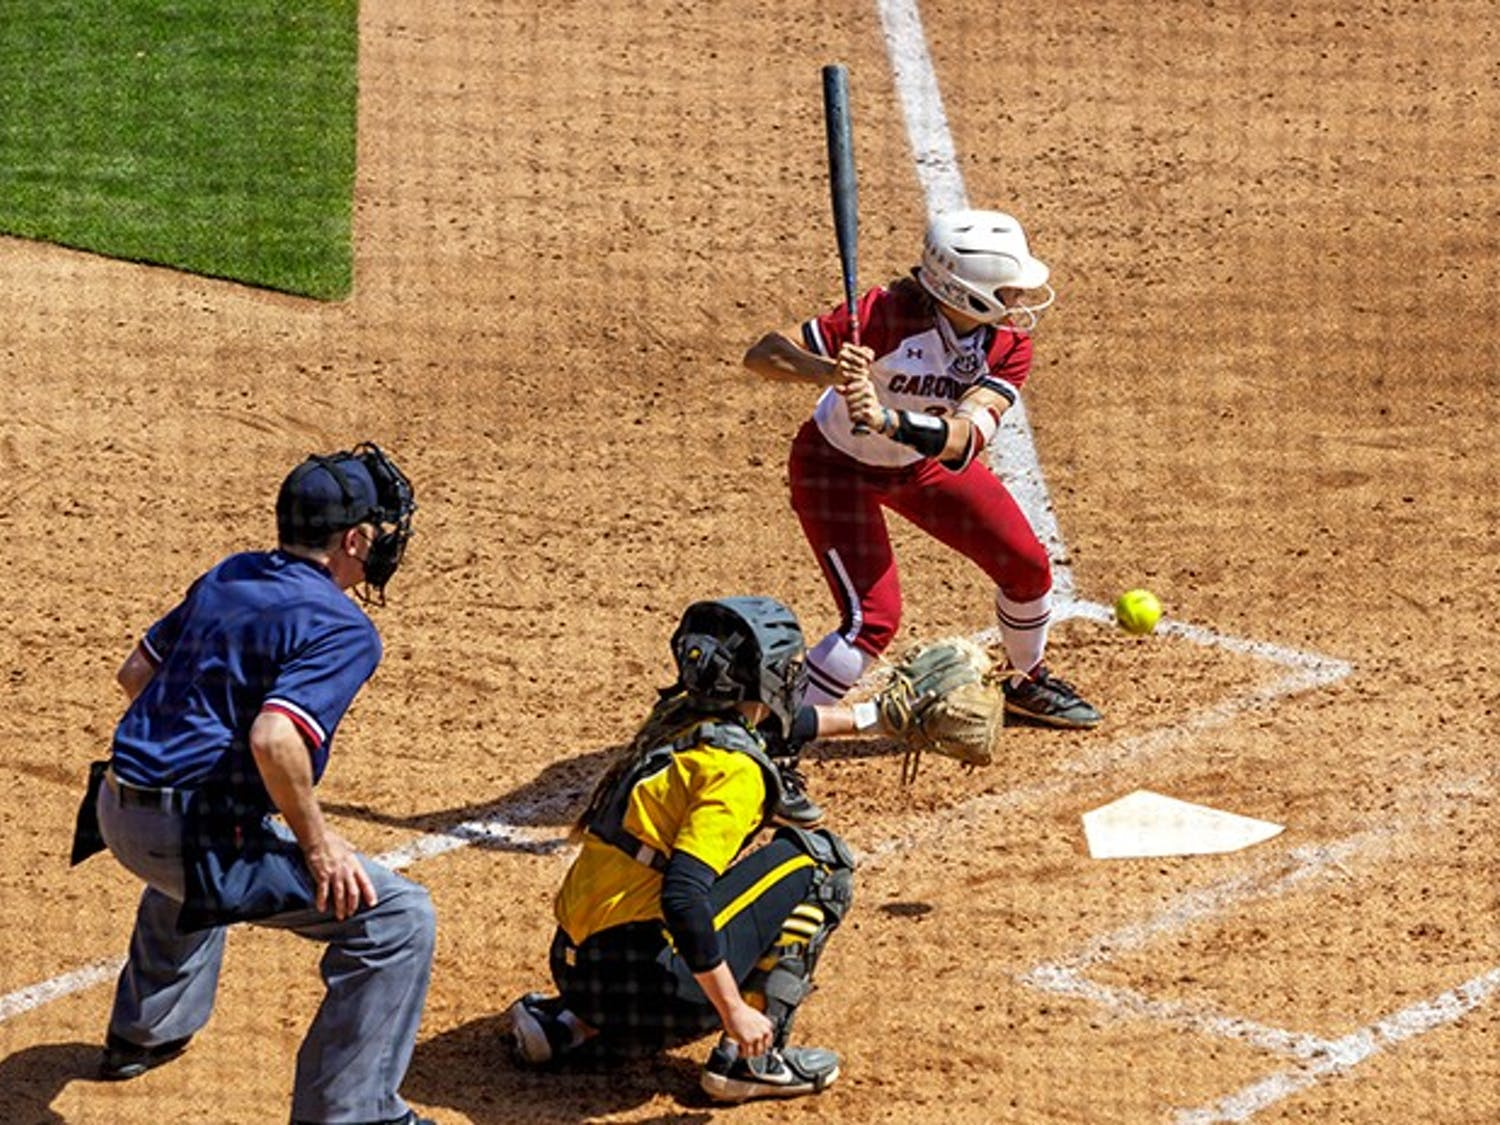 Graduate infielder Kenzi Maguire prepares to receive the ball from the Missouri pitcher.